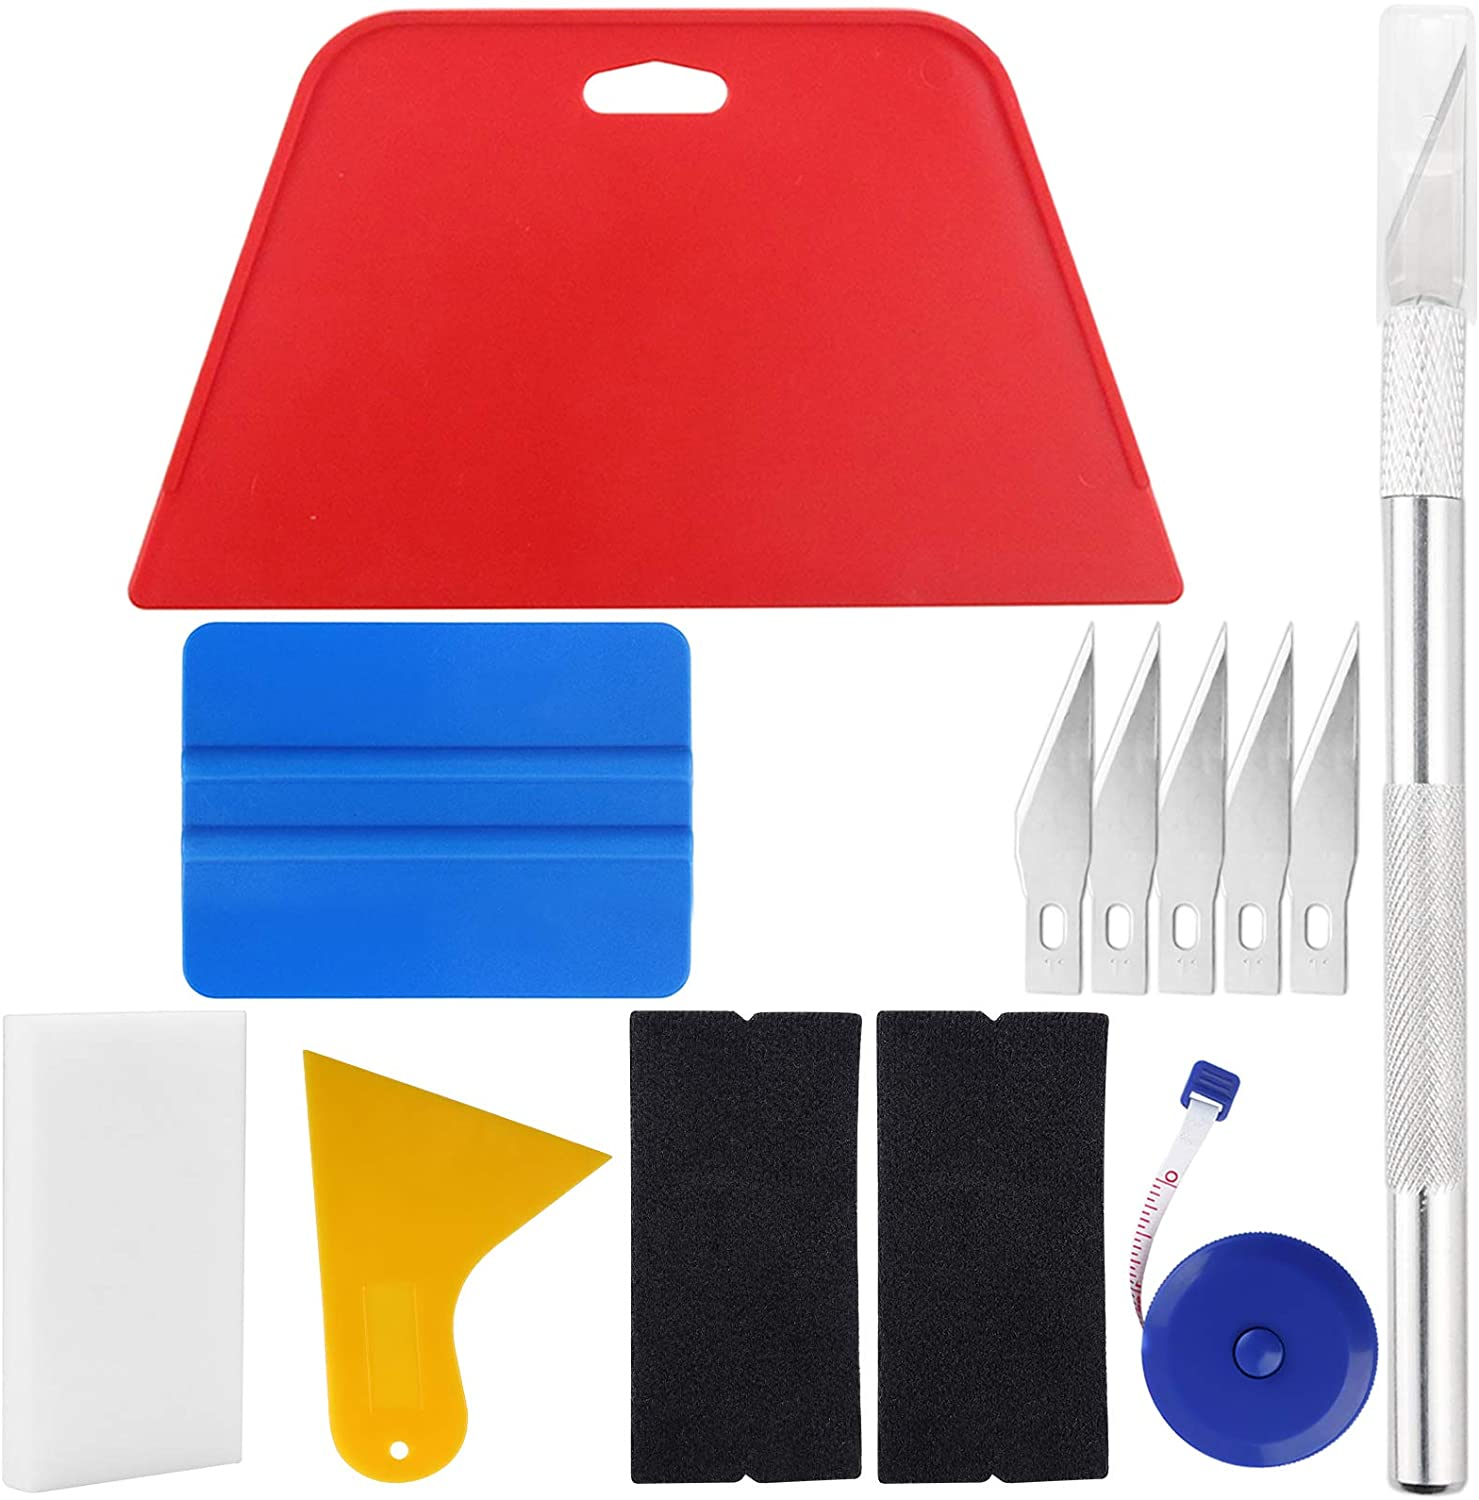 Wallpaper Smoothing Tool Dedication Atlanta Mall Kit Blue Squeegee Red Include